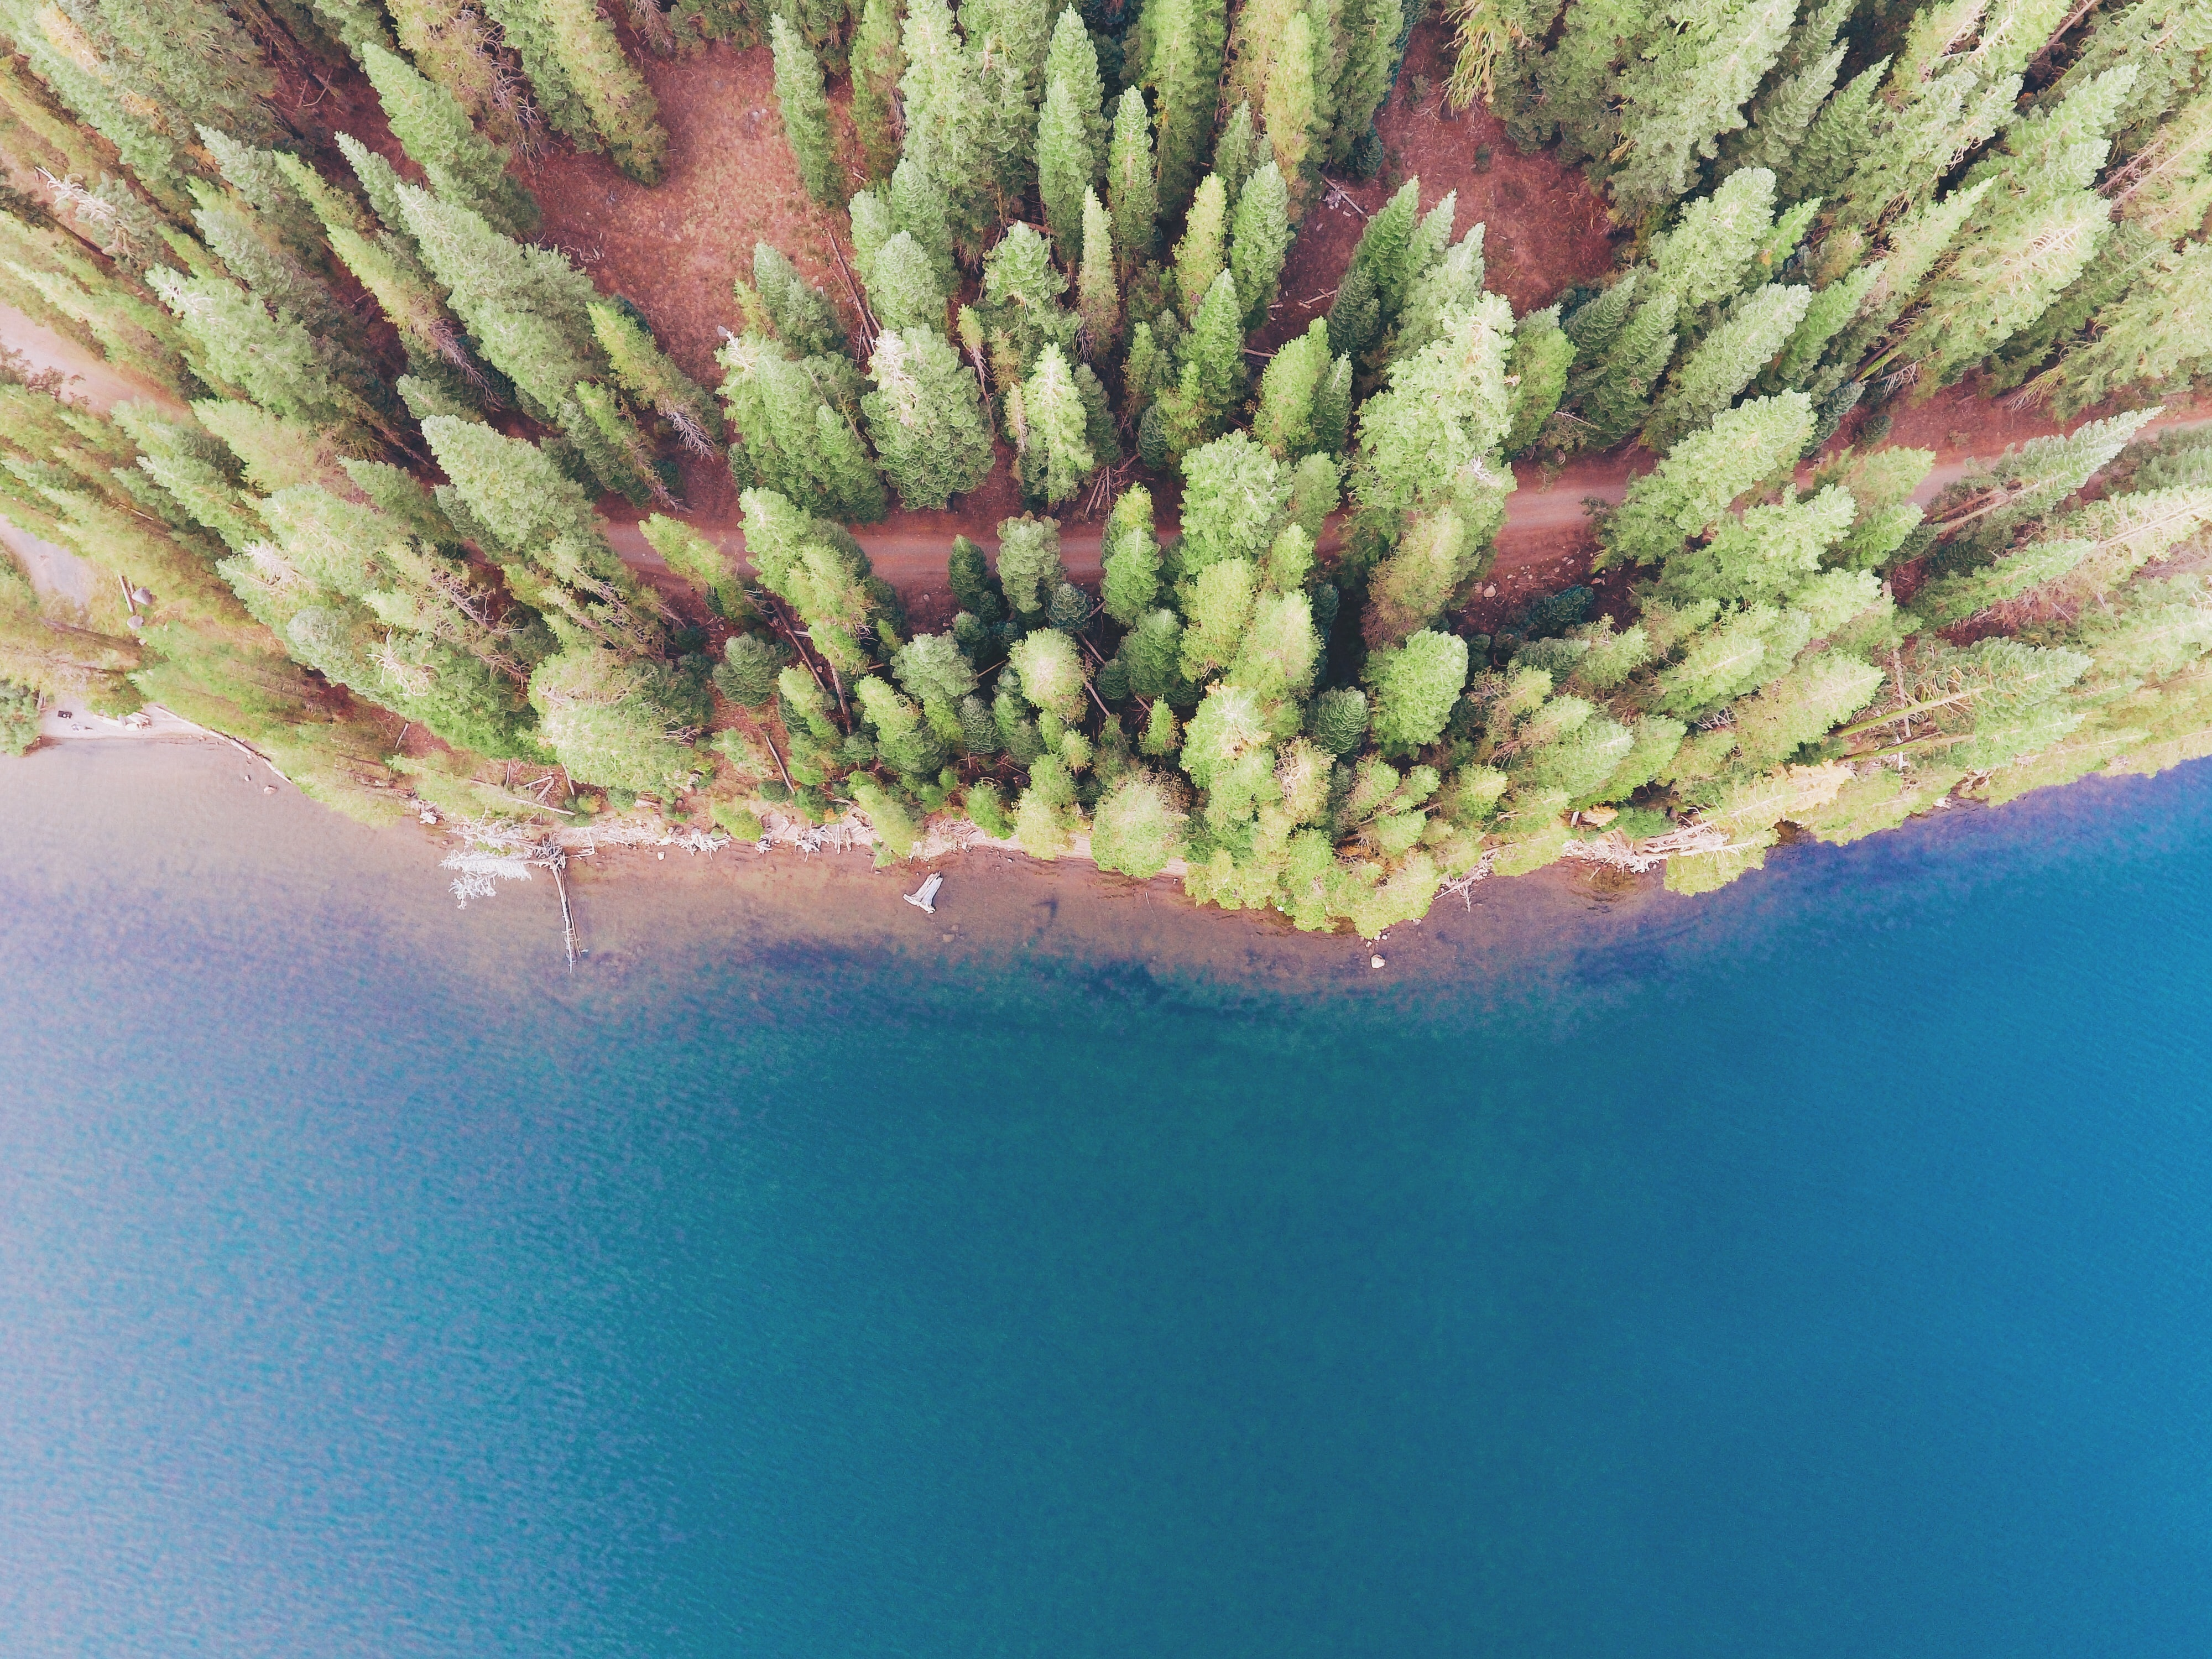 A drone shot of a red dirt path along the shore of a blue lake